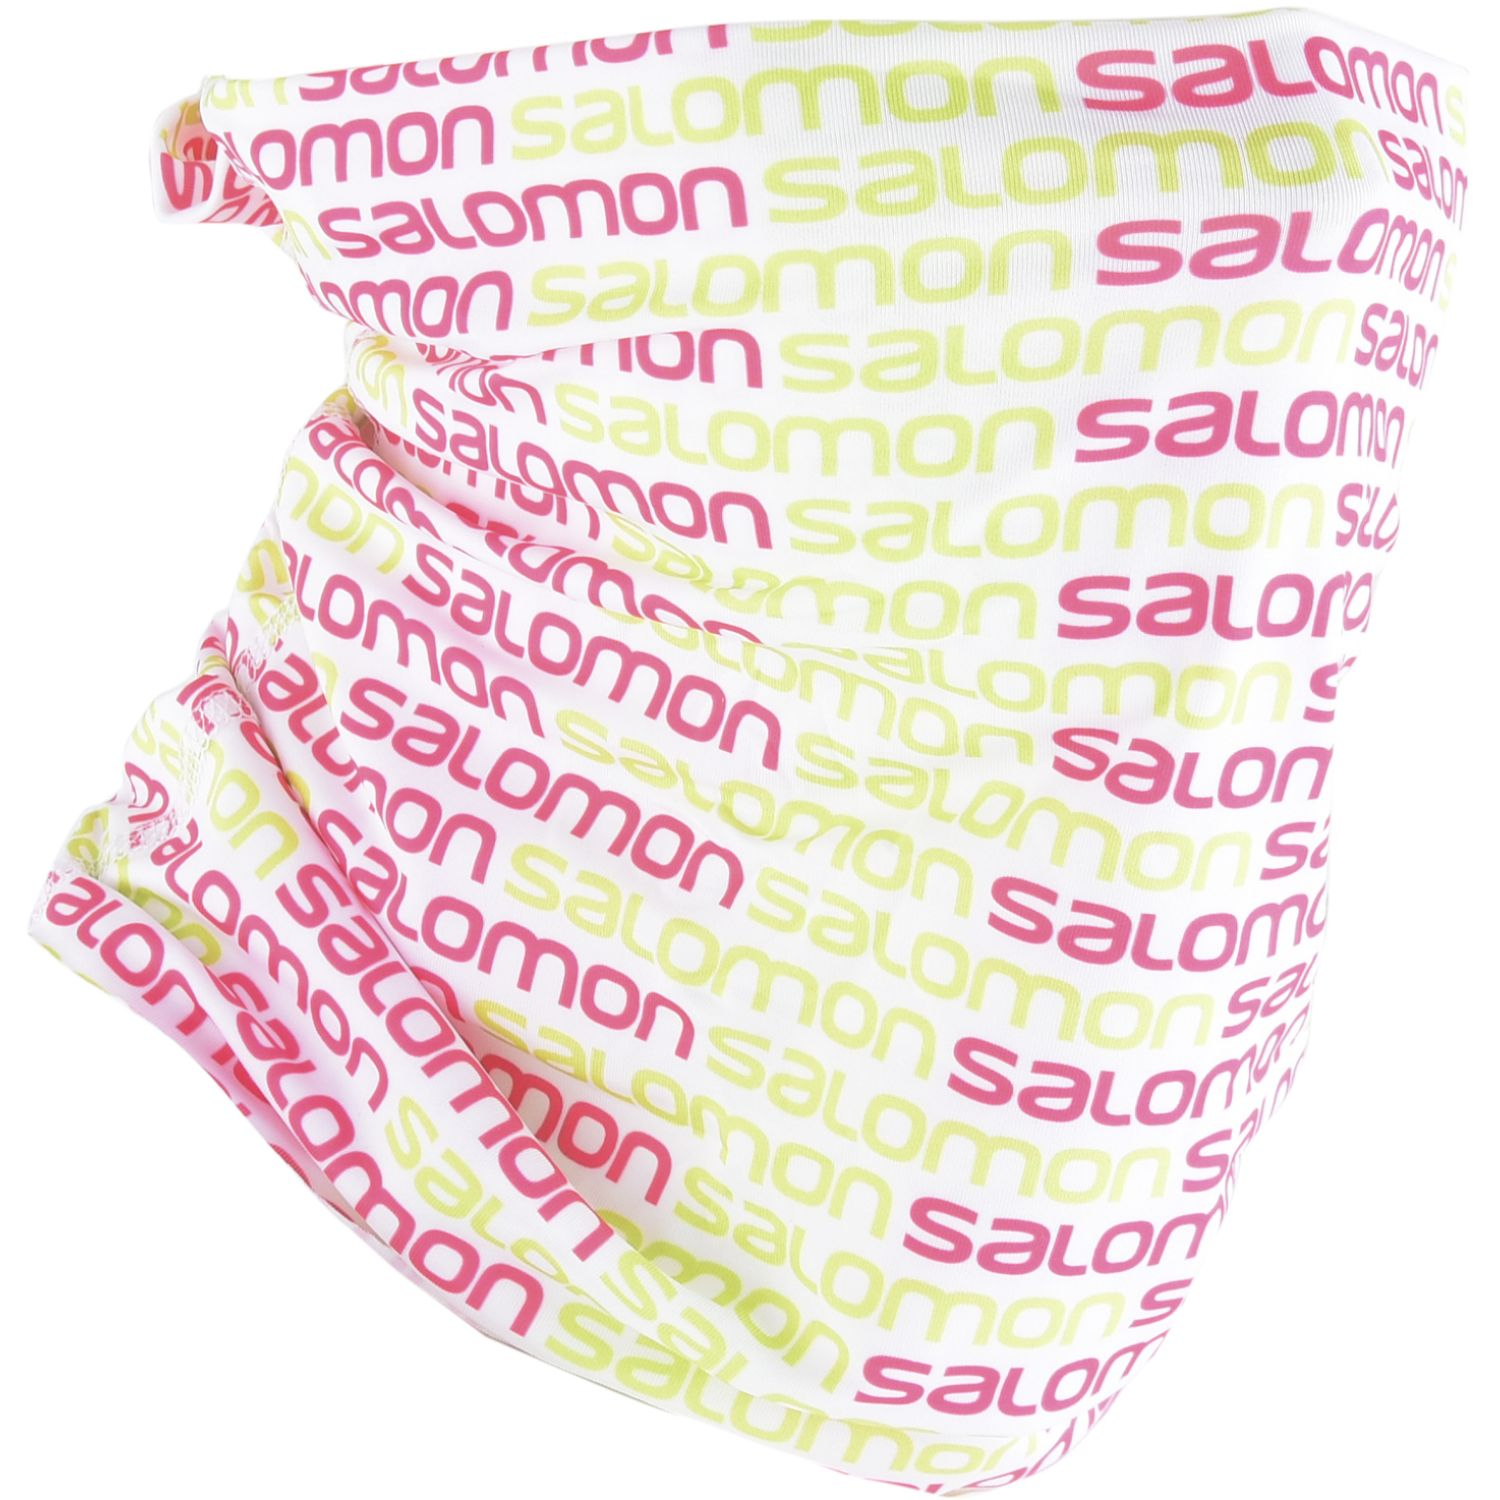 Salomon necktube / salomon Rosado Gaiters de Cuello o Calienta Cuellos